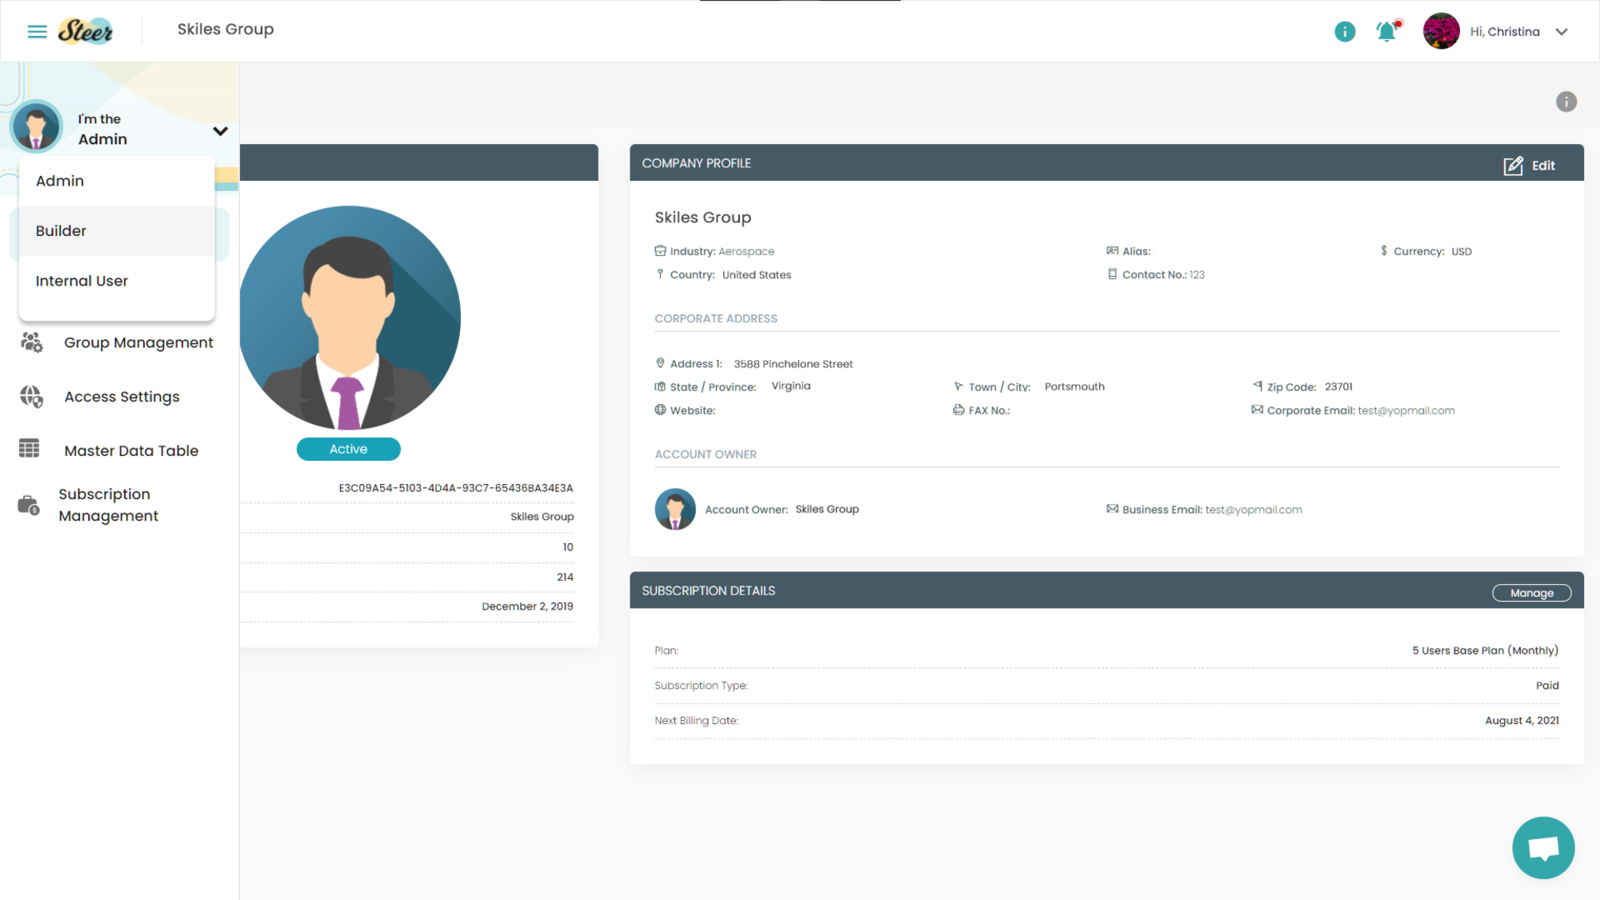 Switching Roles from Admin Dashboard